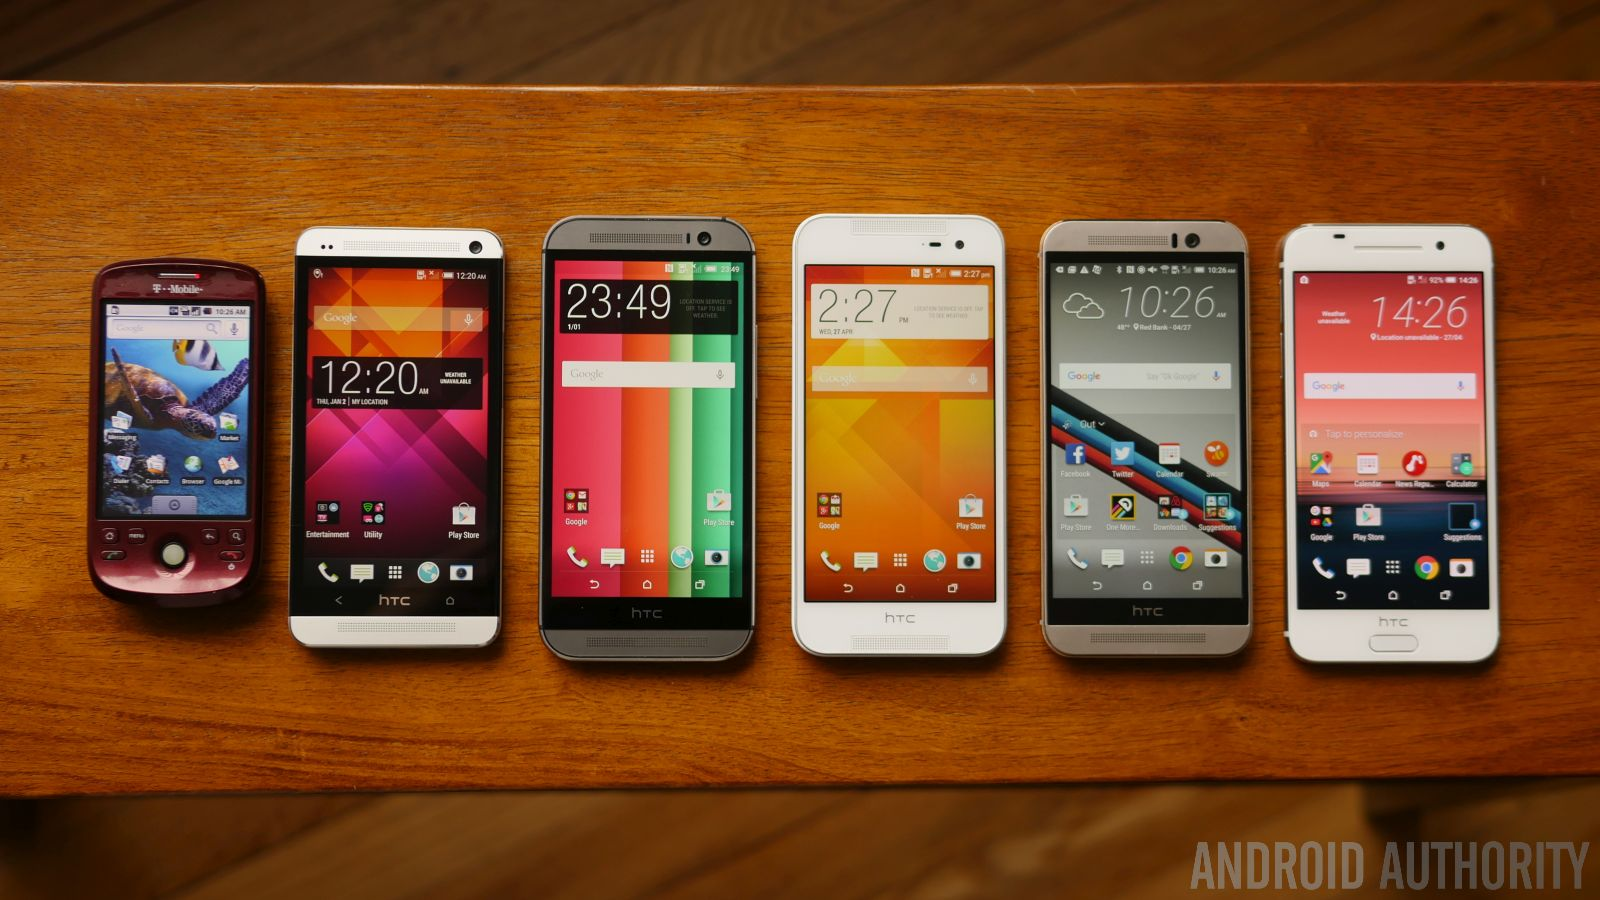 History of HTC's Android designs